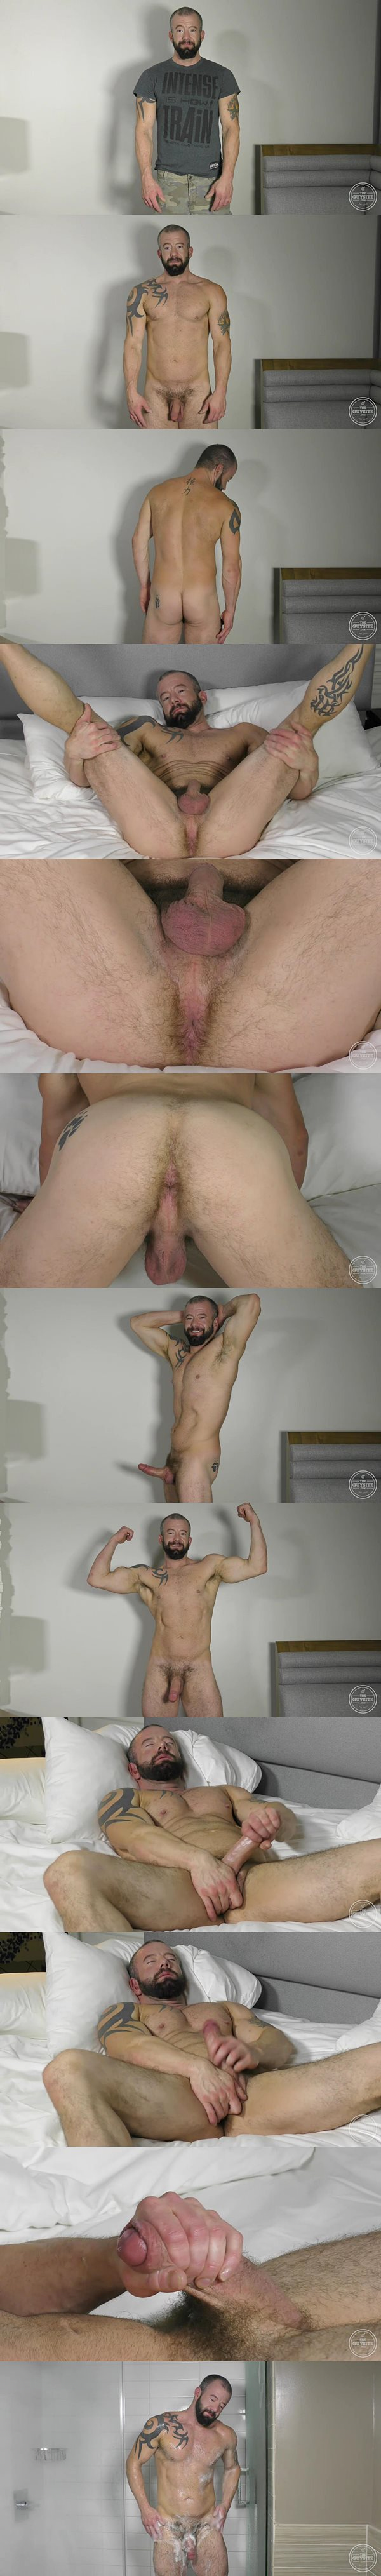 Hot hung bearded stud Adam jerks the cum out of his big cock at Theguysite